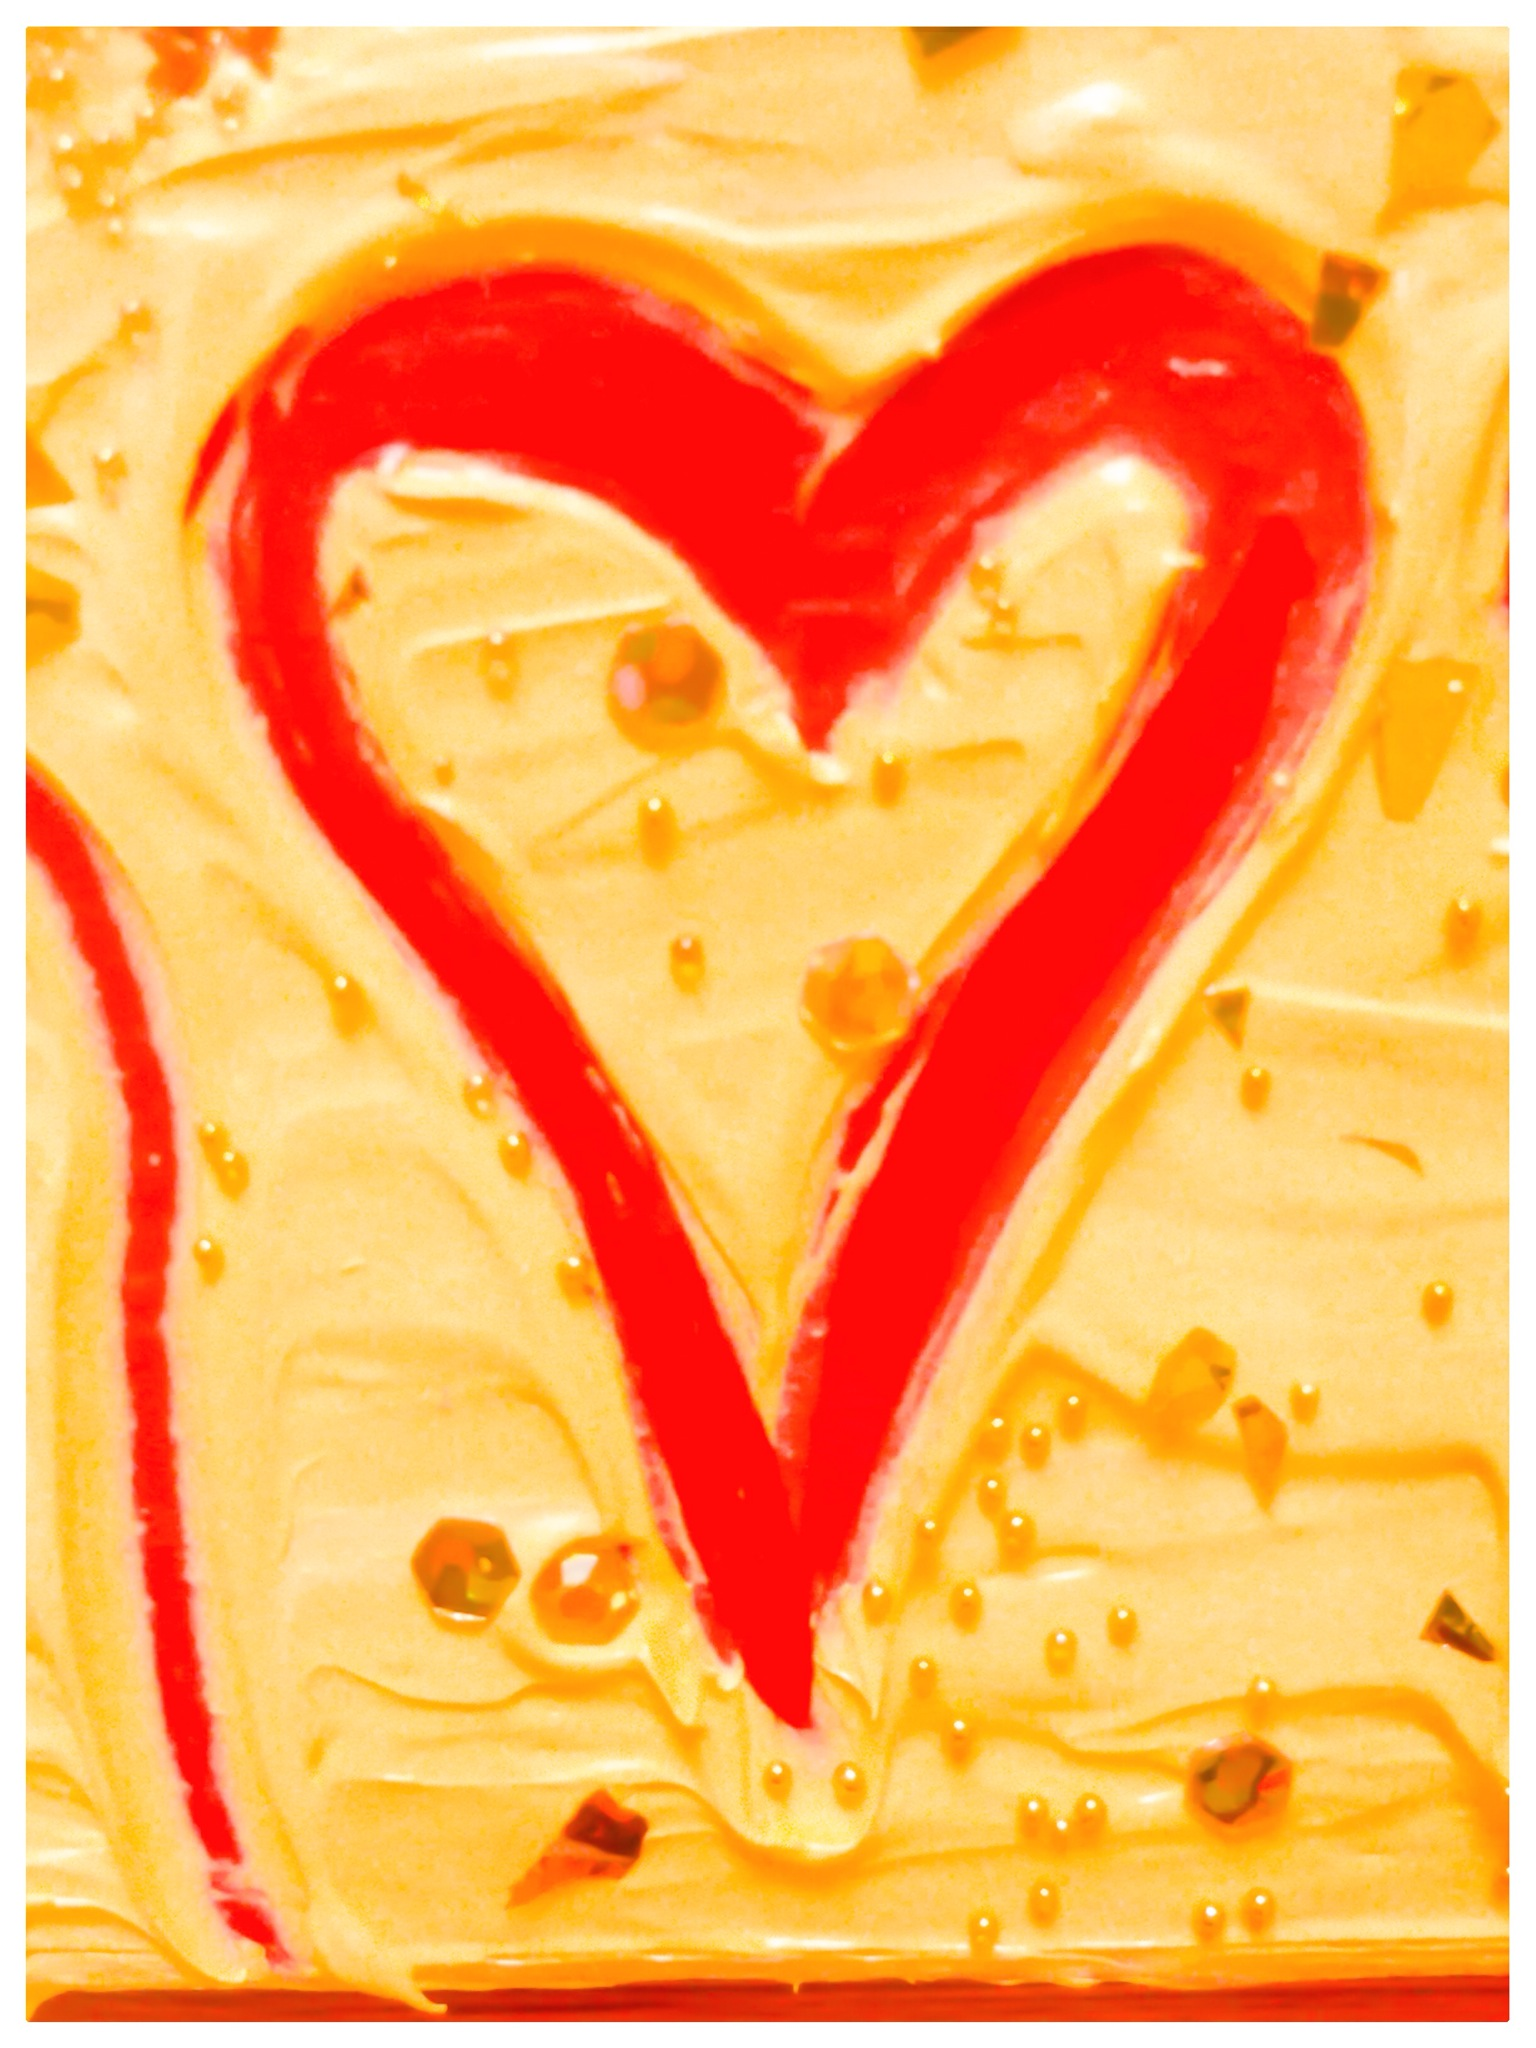 Painted image of a red heart in yellow paint.